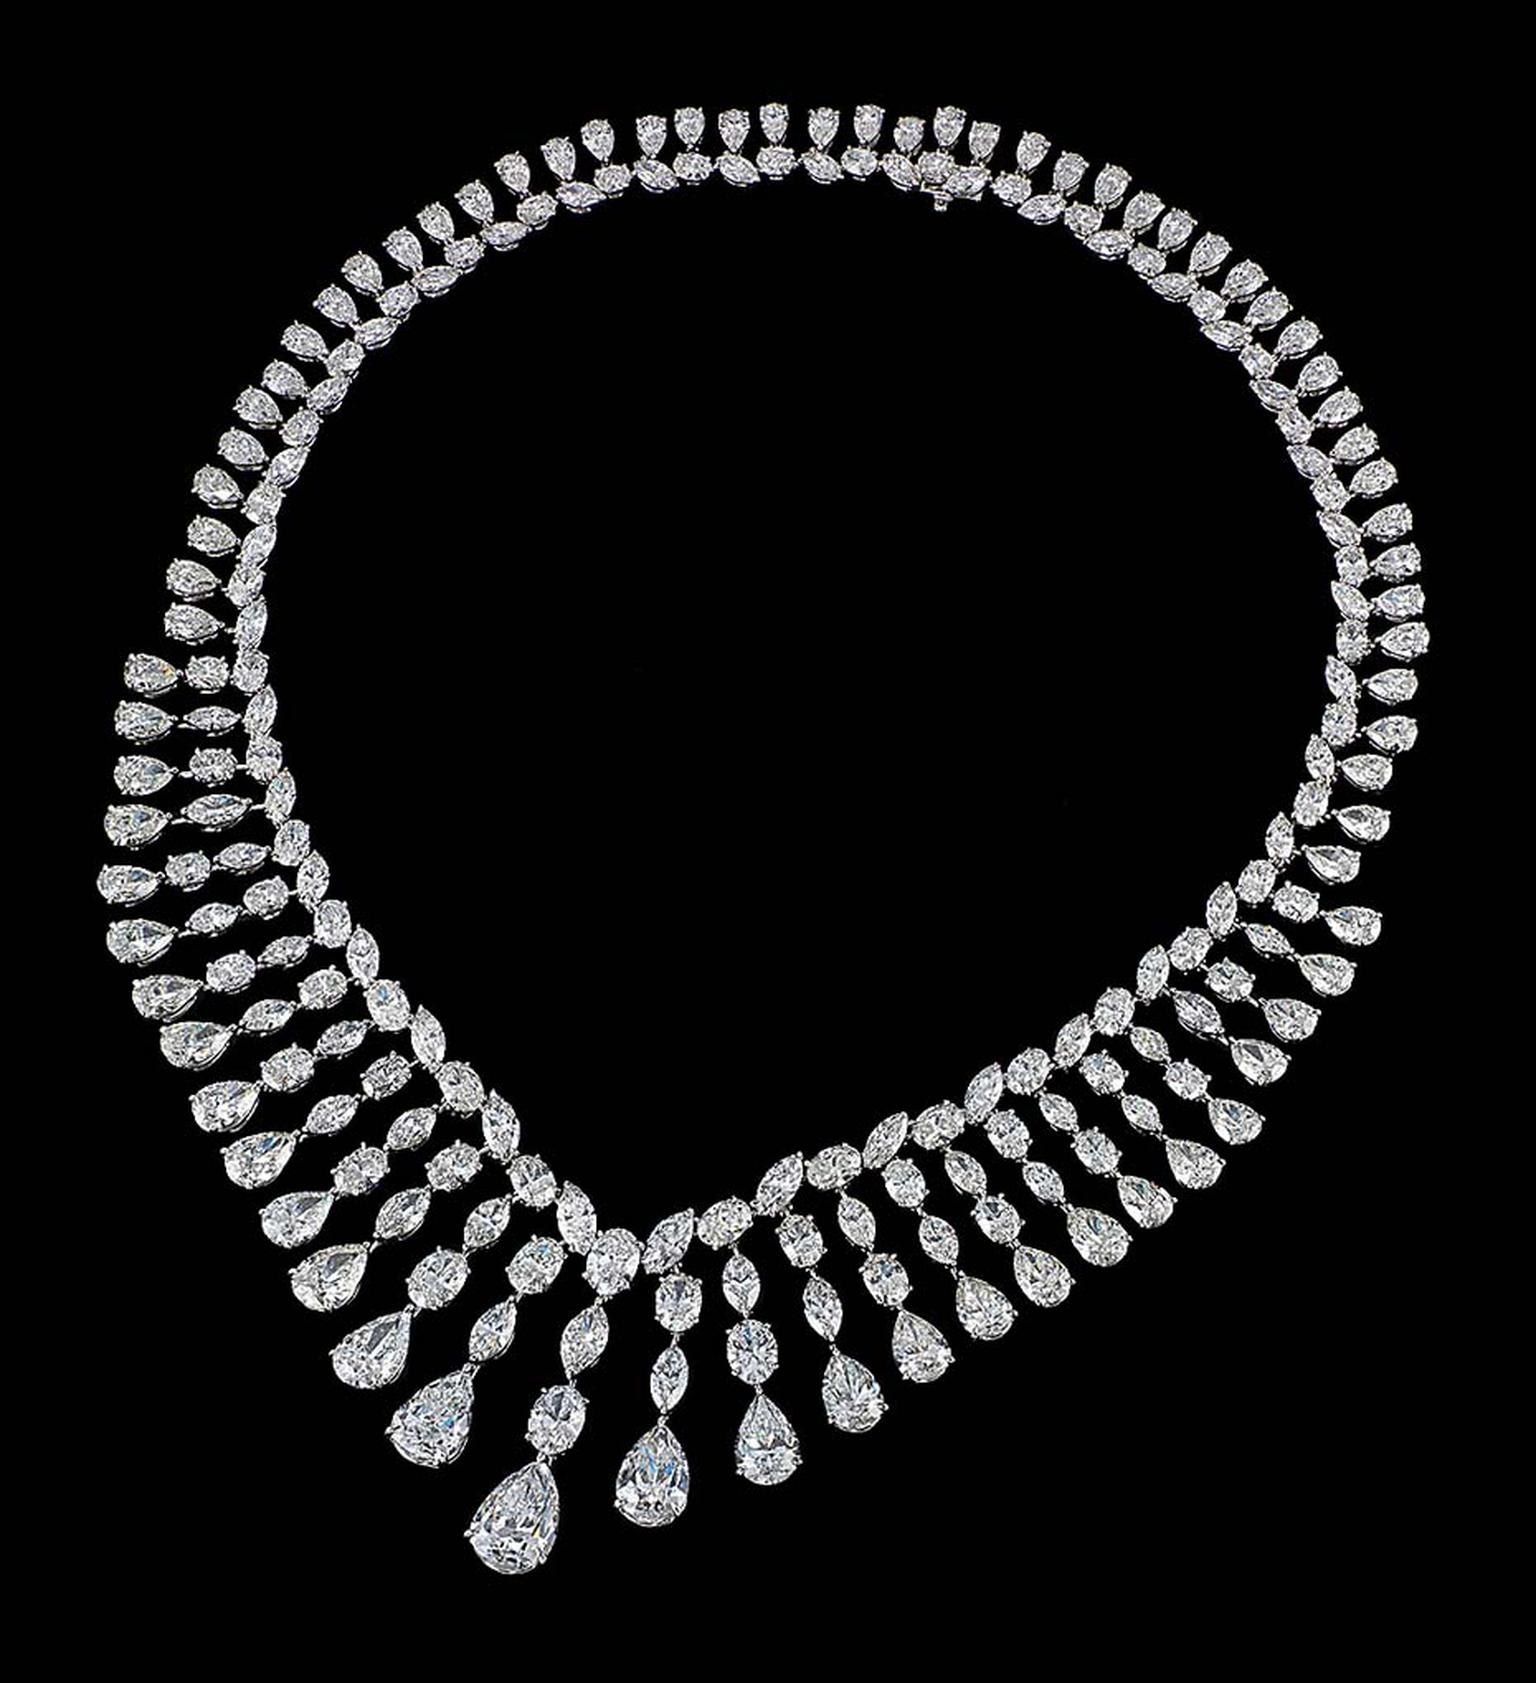 Dehres, Hong Kong, will also be exhibiting The Majestic Set necklace with pear-shaped diamonds graduating from a 5.00ct centre stone with successive rows of oval and marquise diamonds.